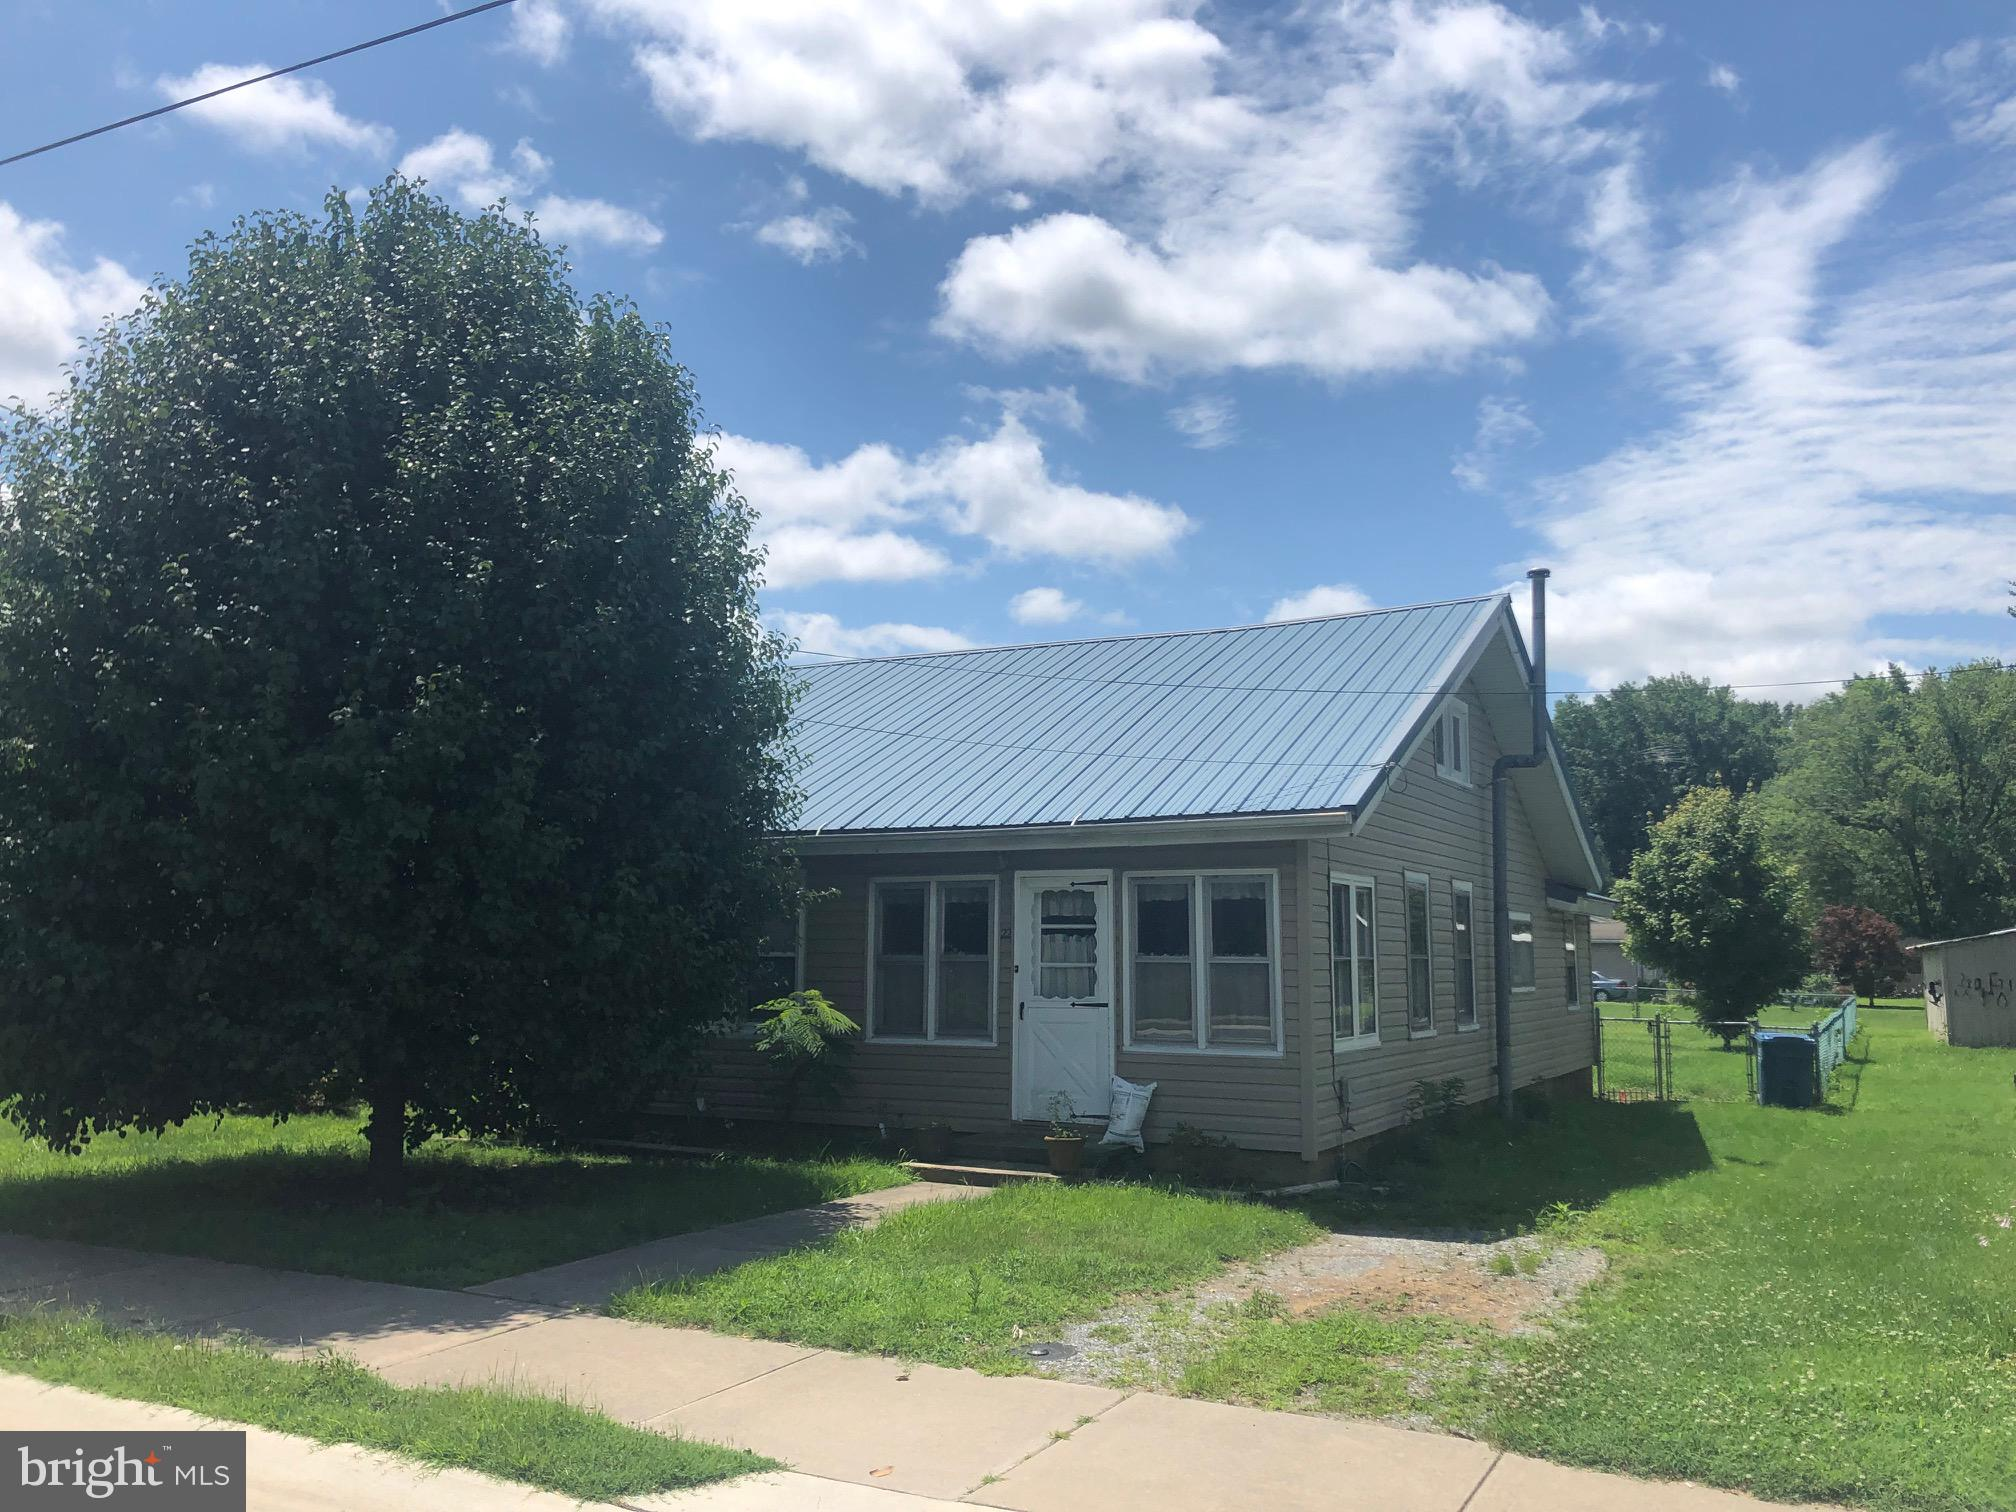 This is a charming in town find.   Sold As Is.... this home has a fenced in back yard, vinyl siding and a metal roof.  The kitchen has a refrigerator and stove. Hardwood floors along with some carpet.  Easy to show, this won't last long